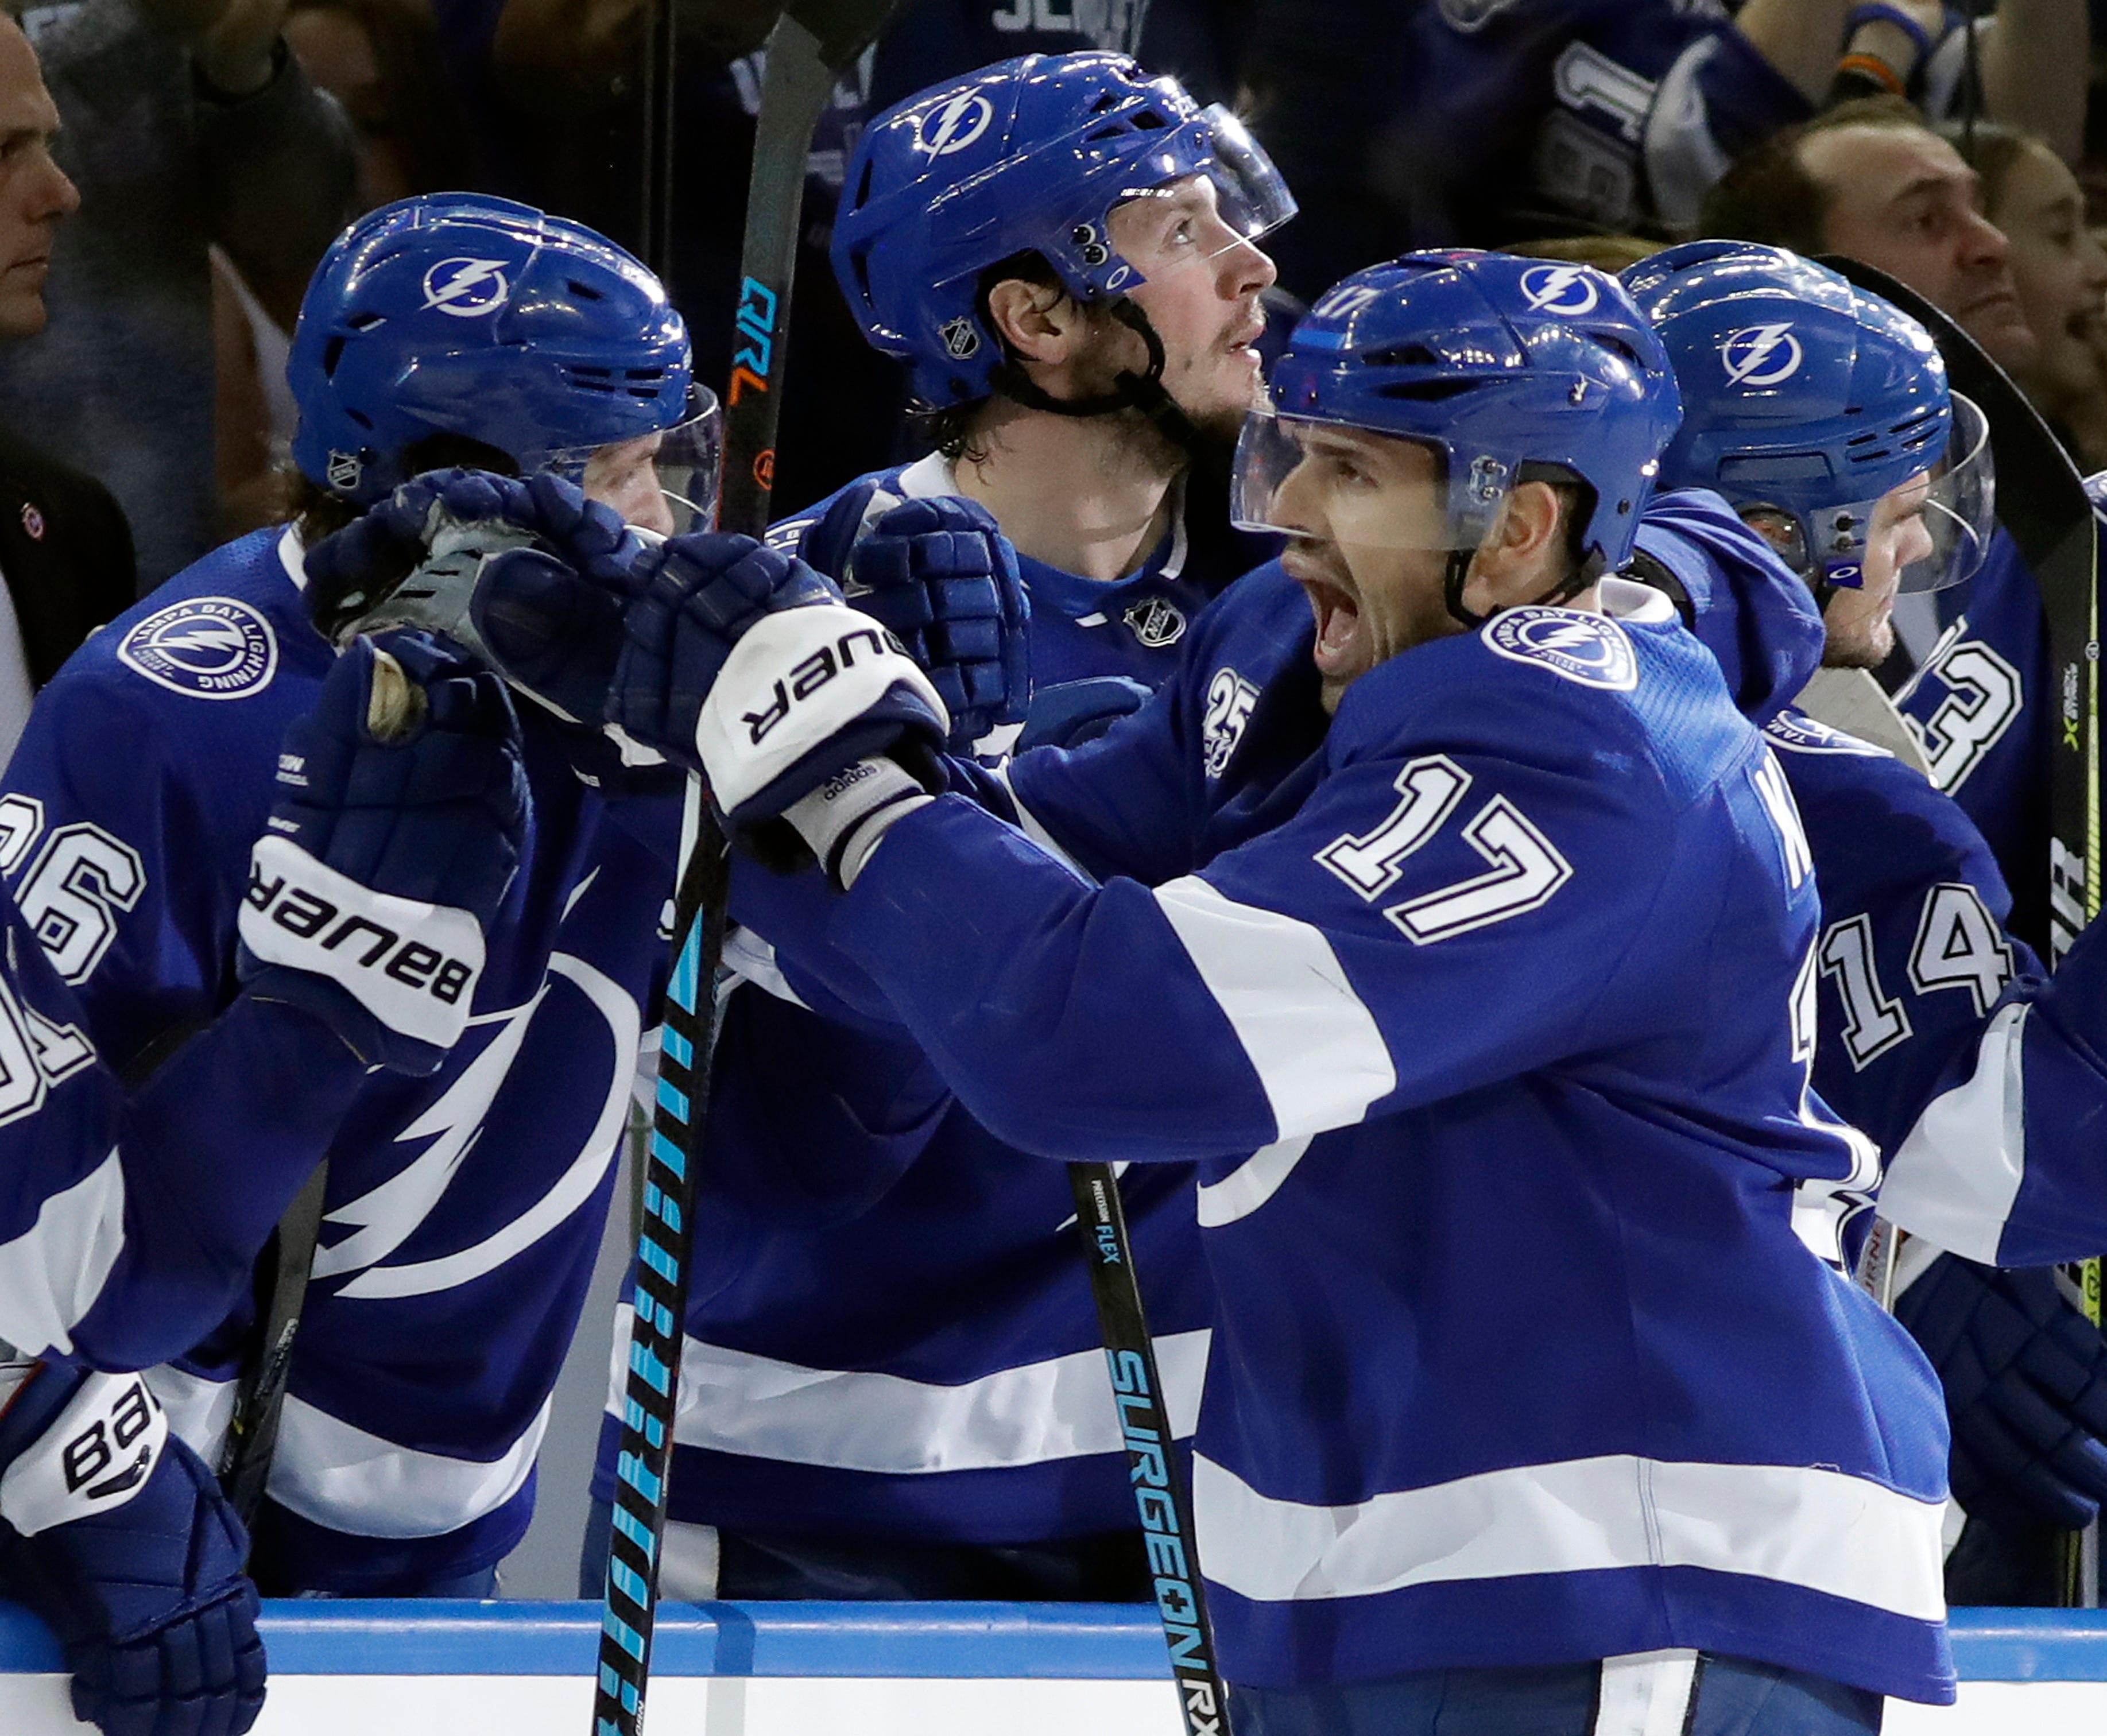 Lightning erase 3-goal deficit, rally past Maple Leafs 4-3